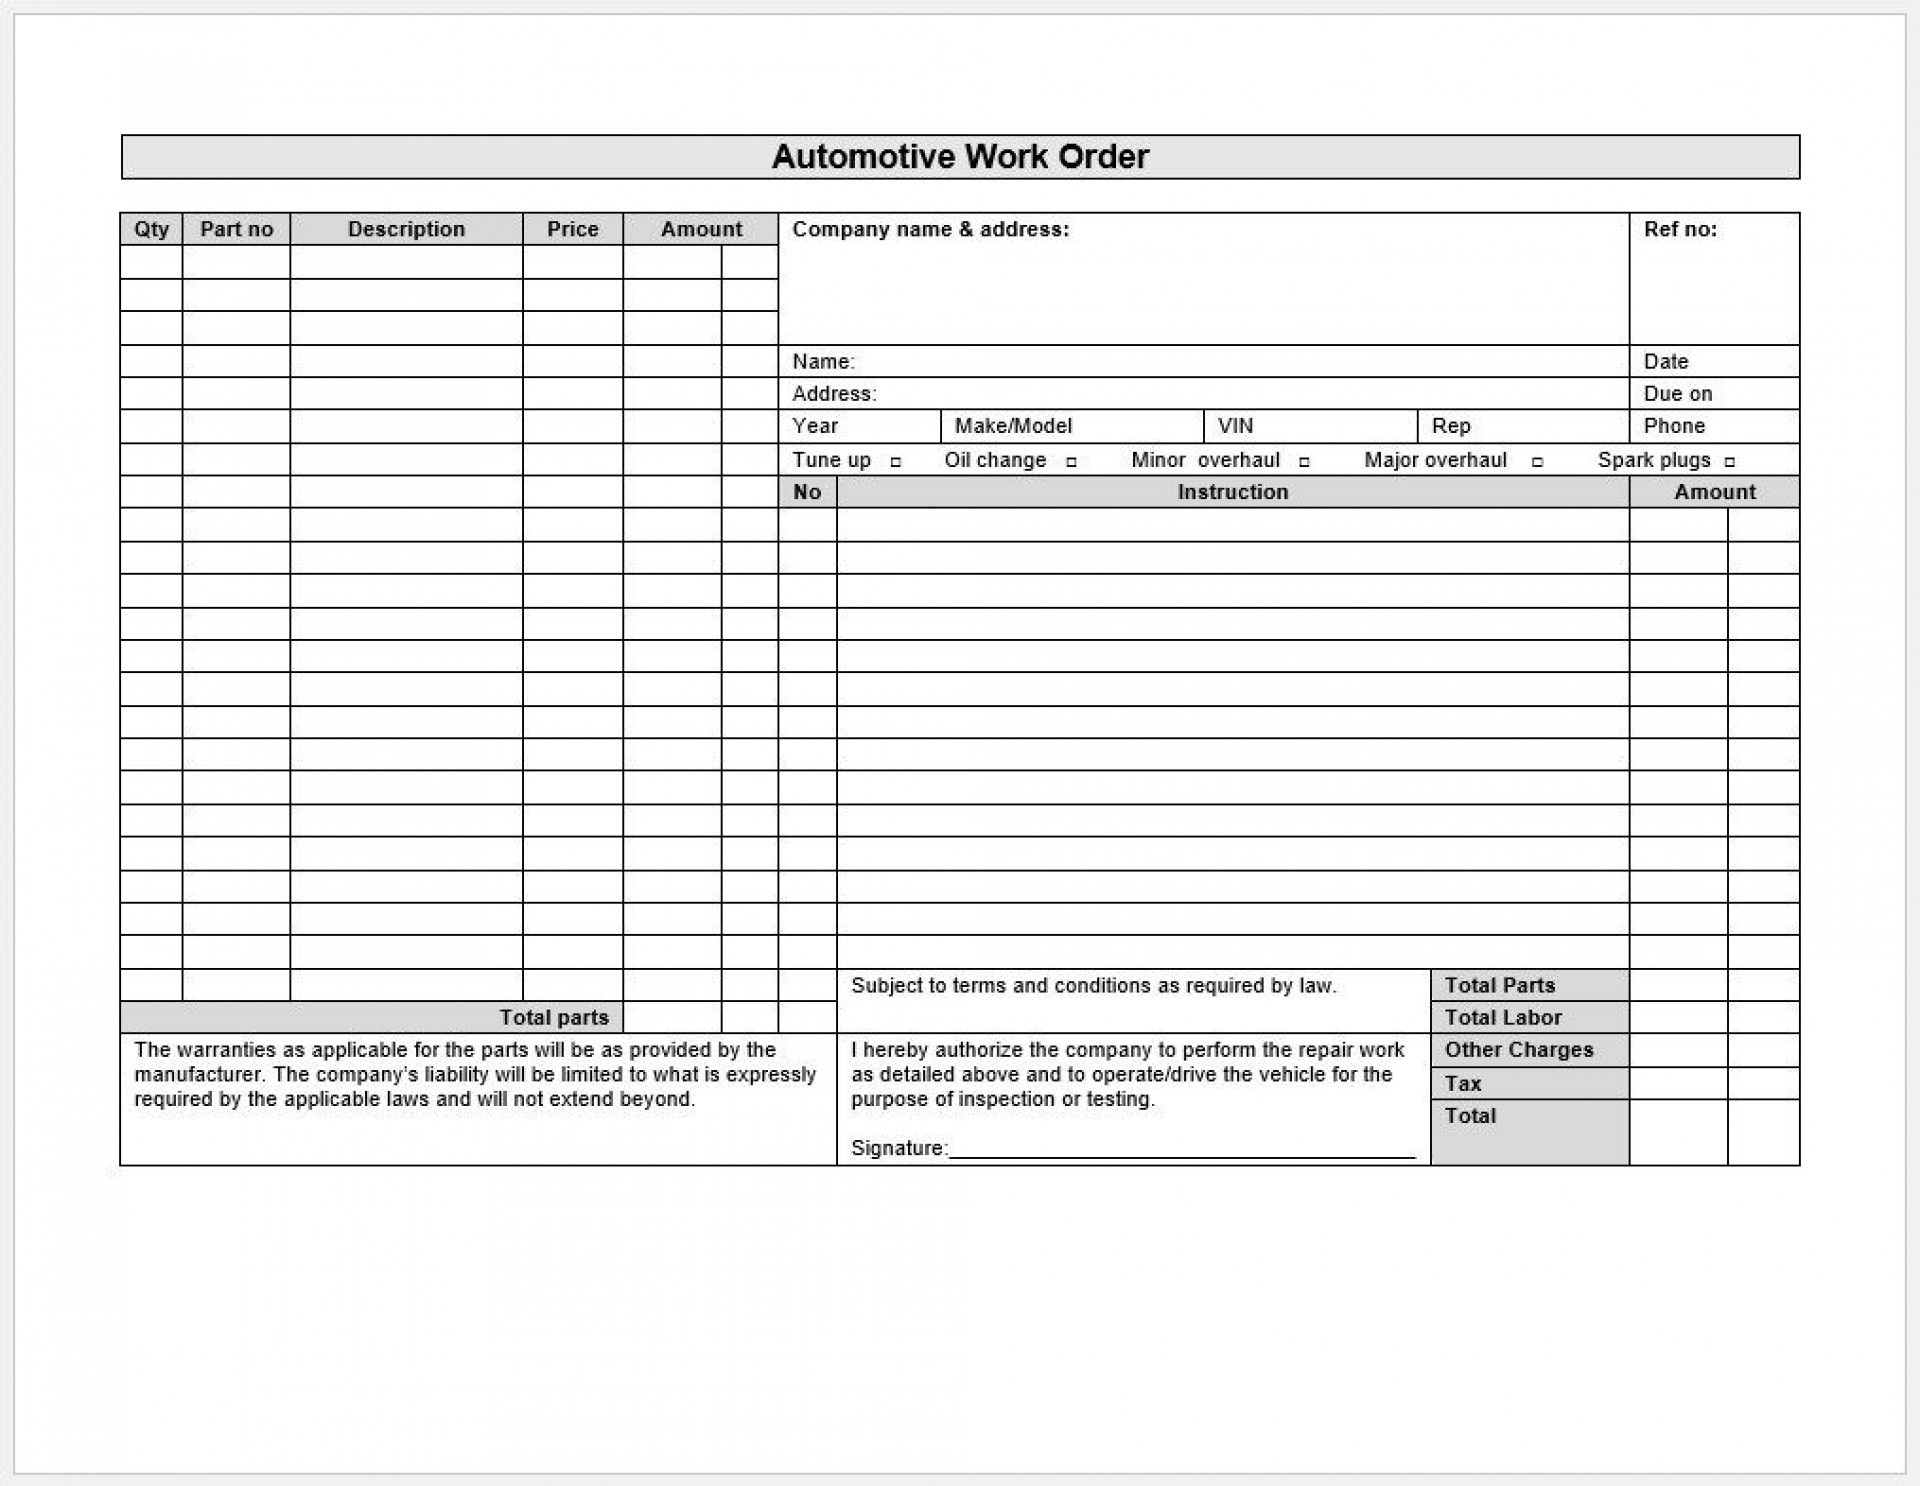 009 Staggering Work Order Template Free Idea  Automotive Auto Printable Request1920